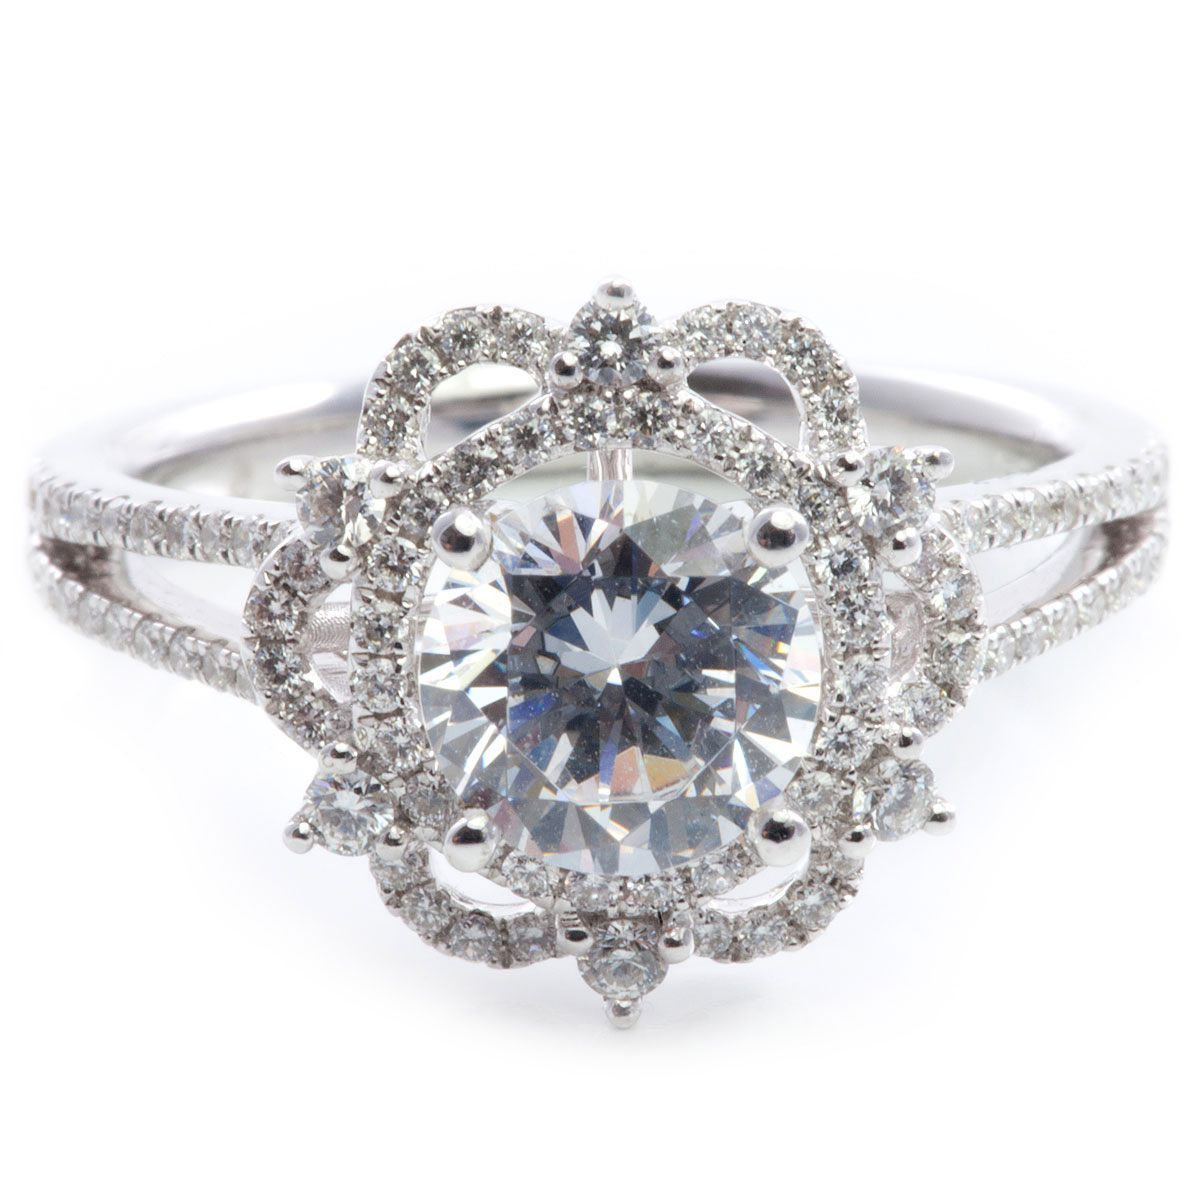 breathtaking vintage engagement rings inspirations engagement